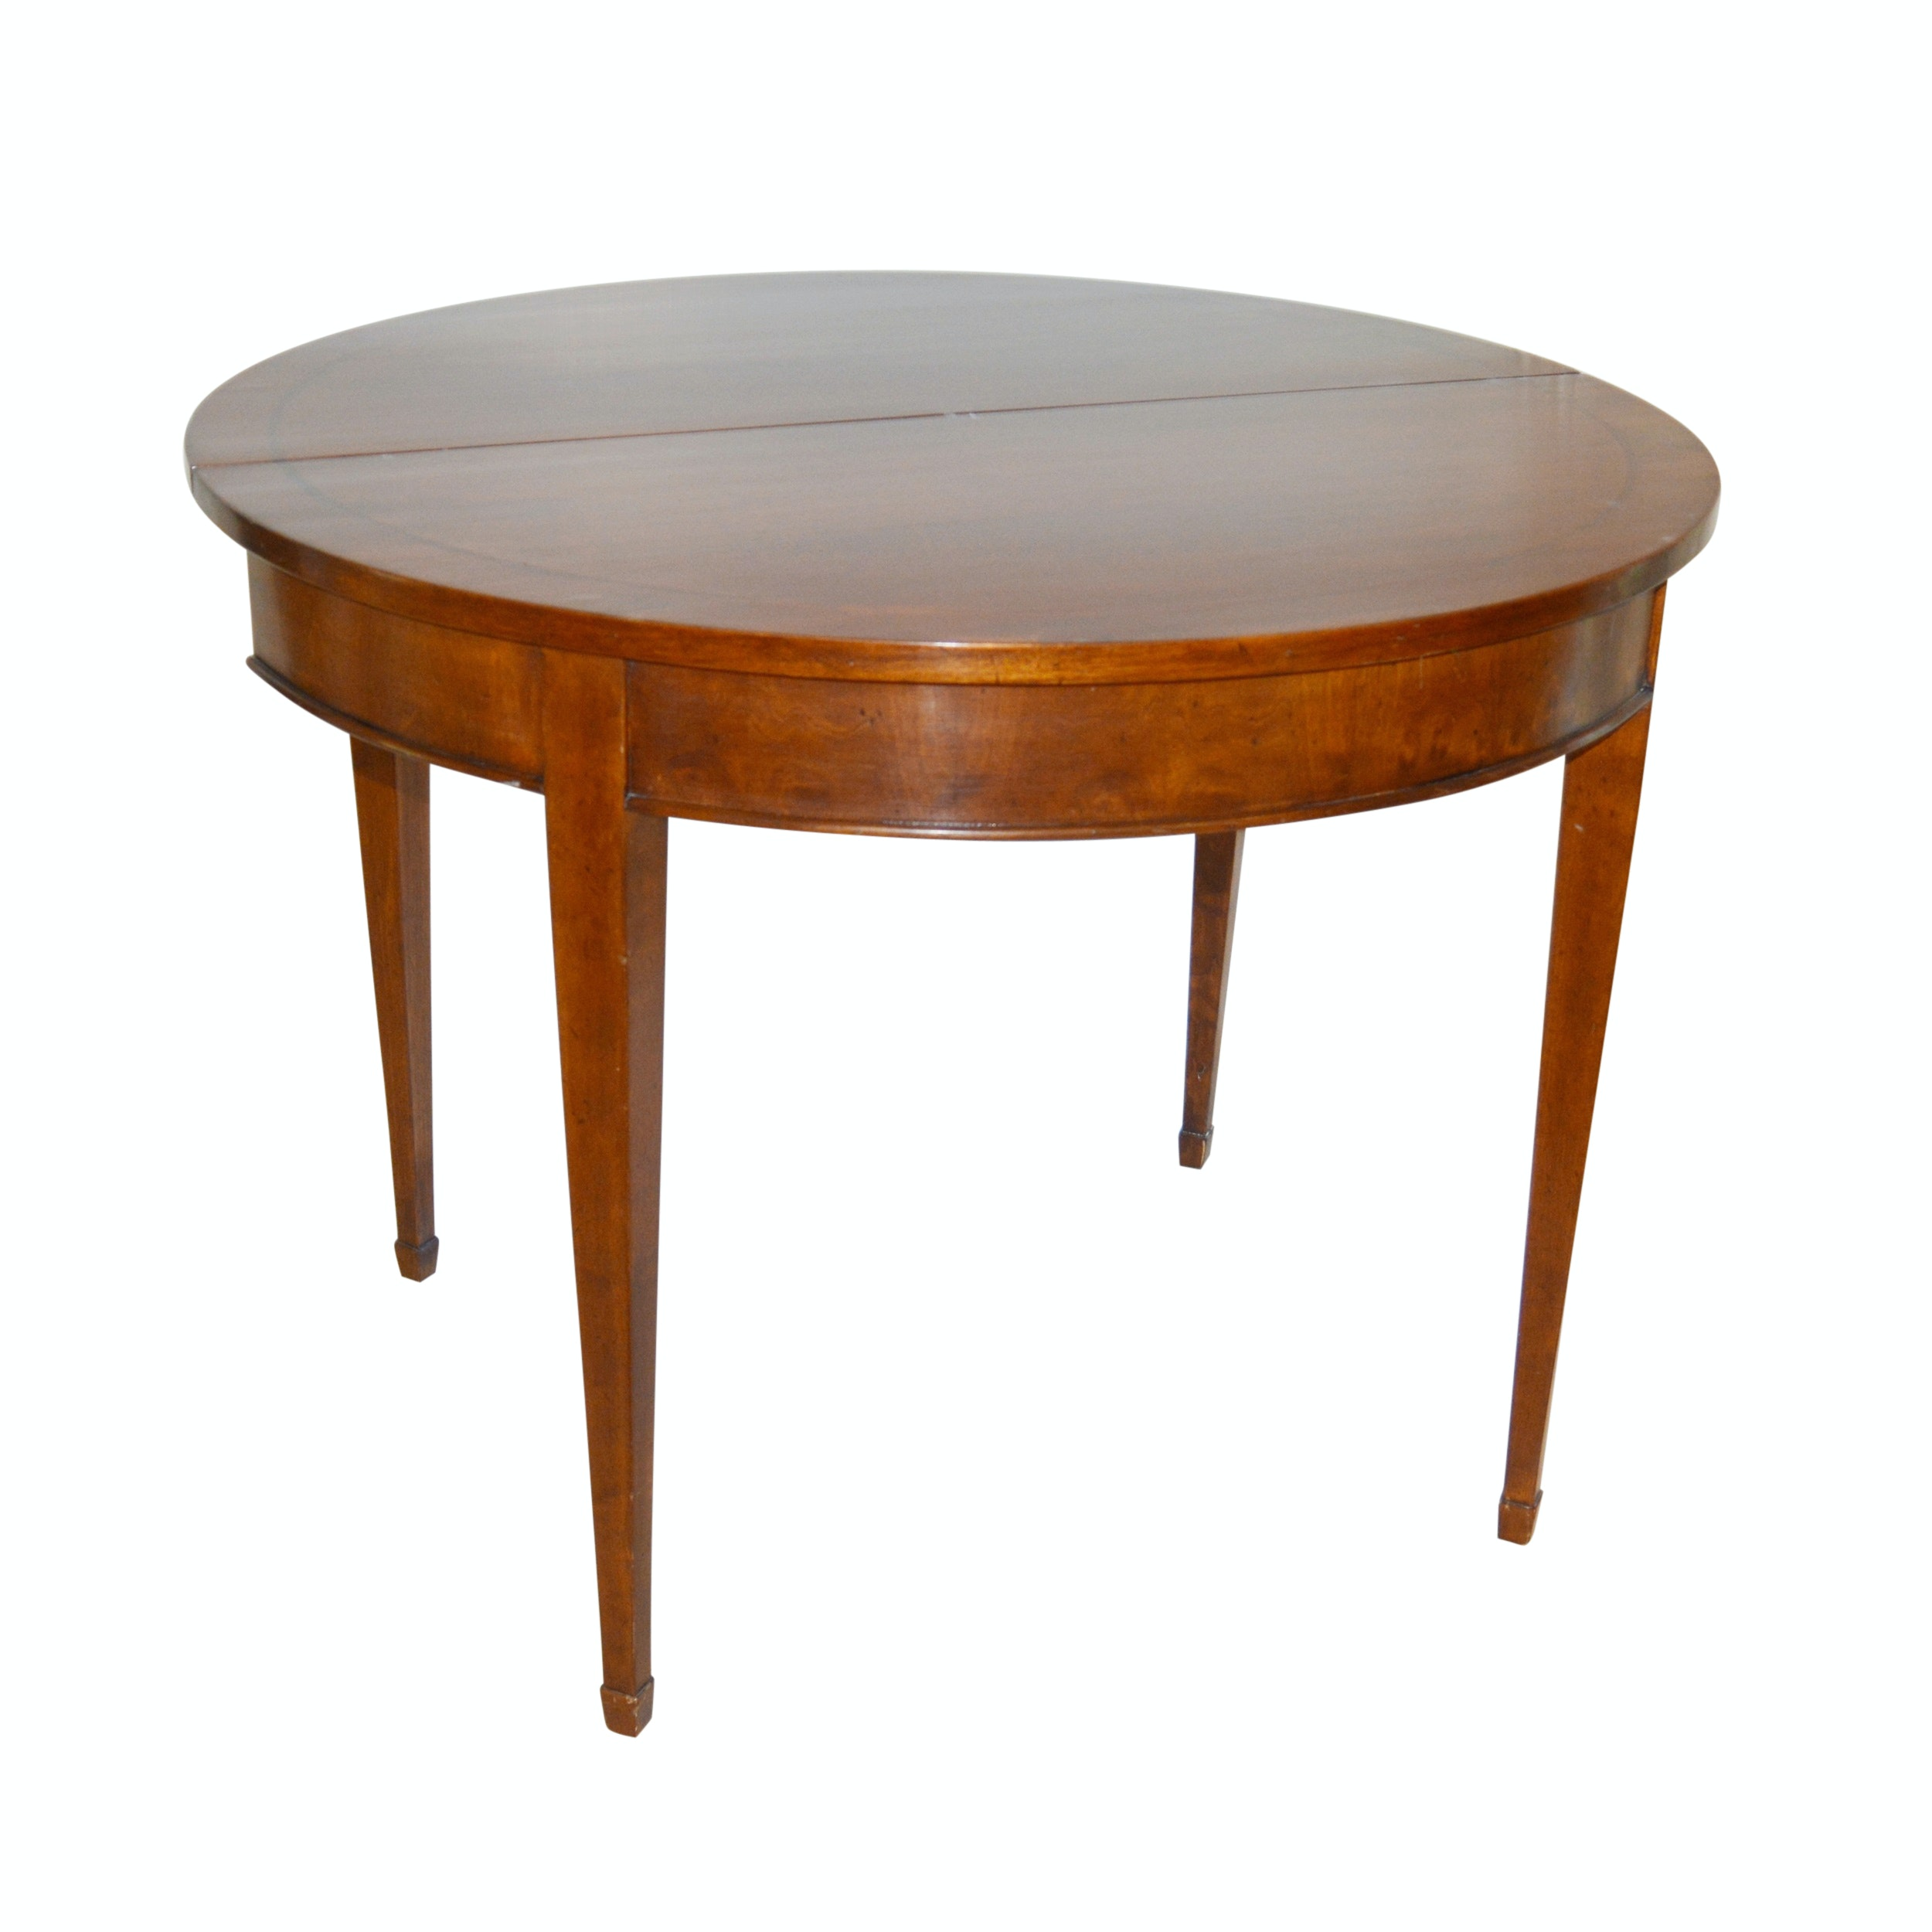 Italian Demilune Folding Top Gateleg Table